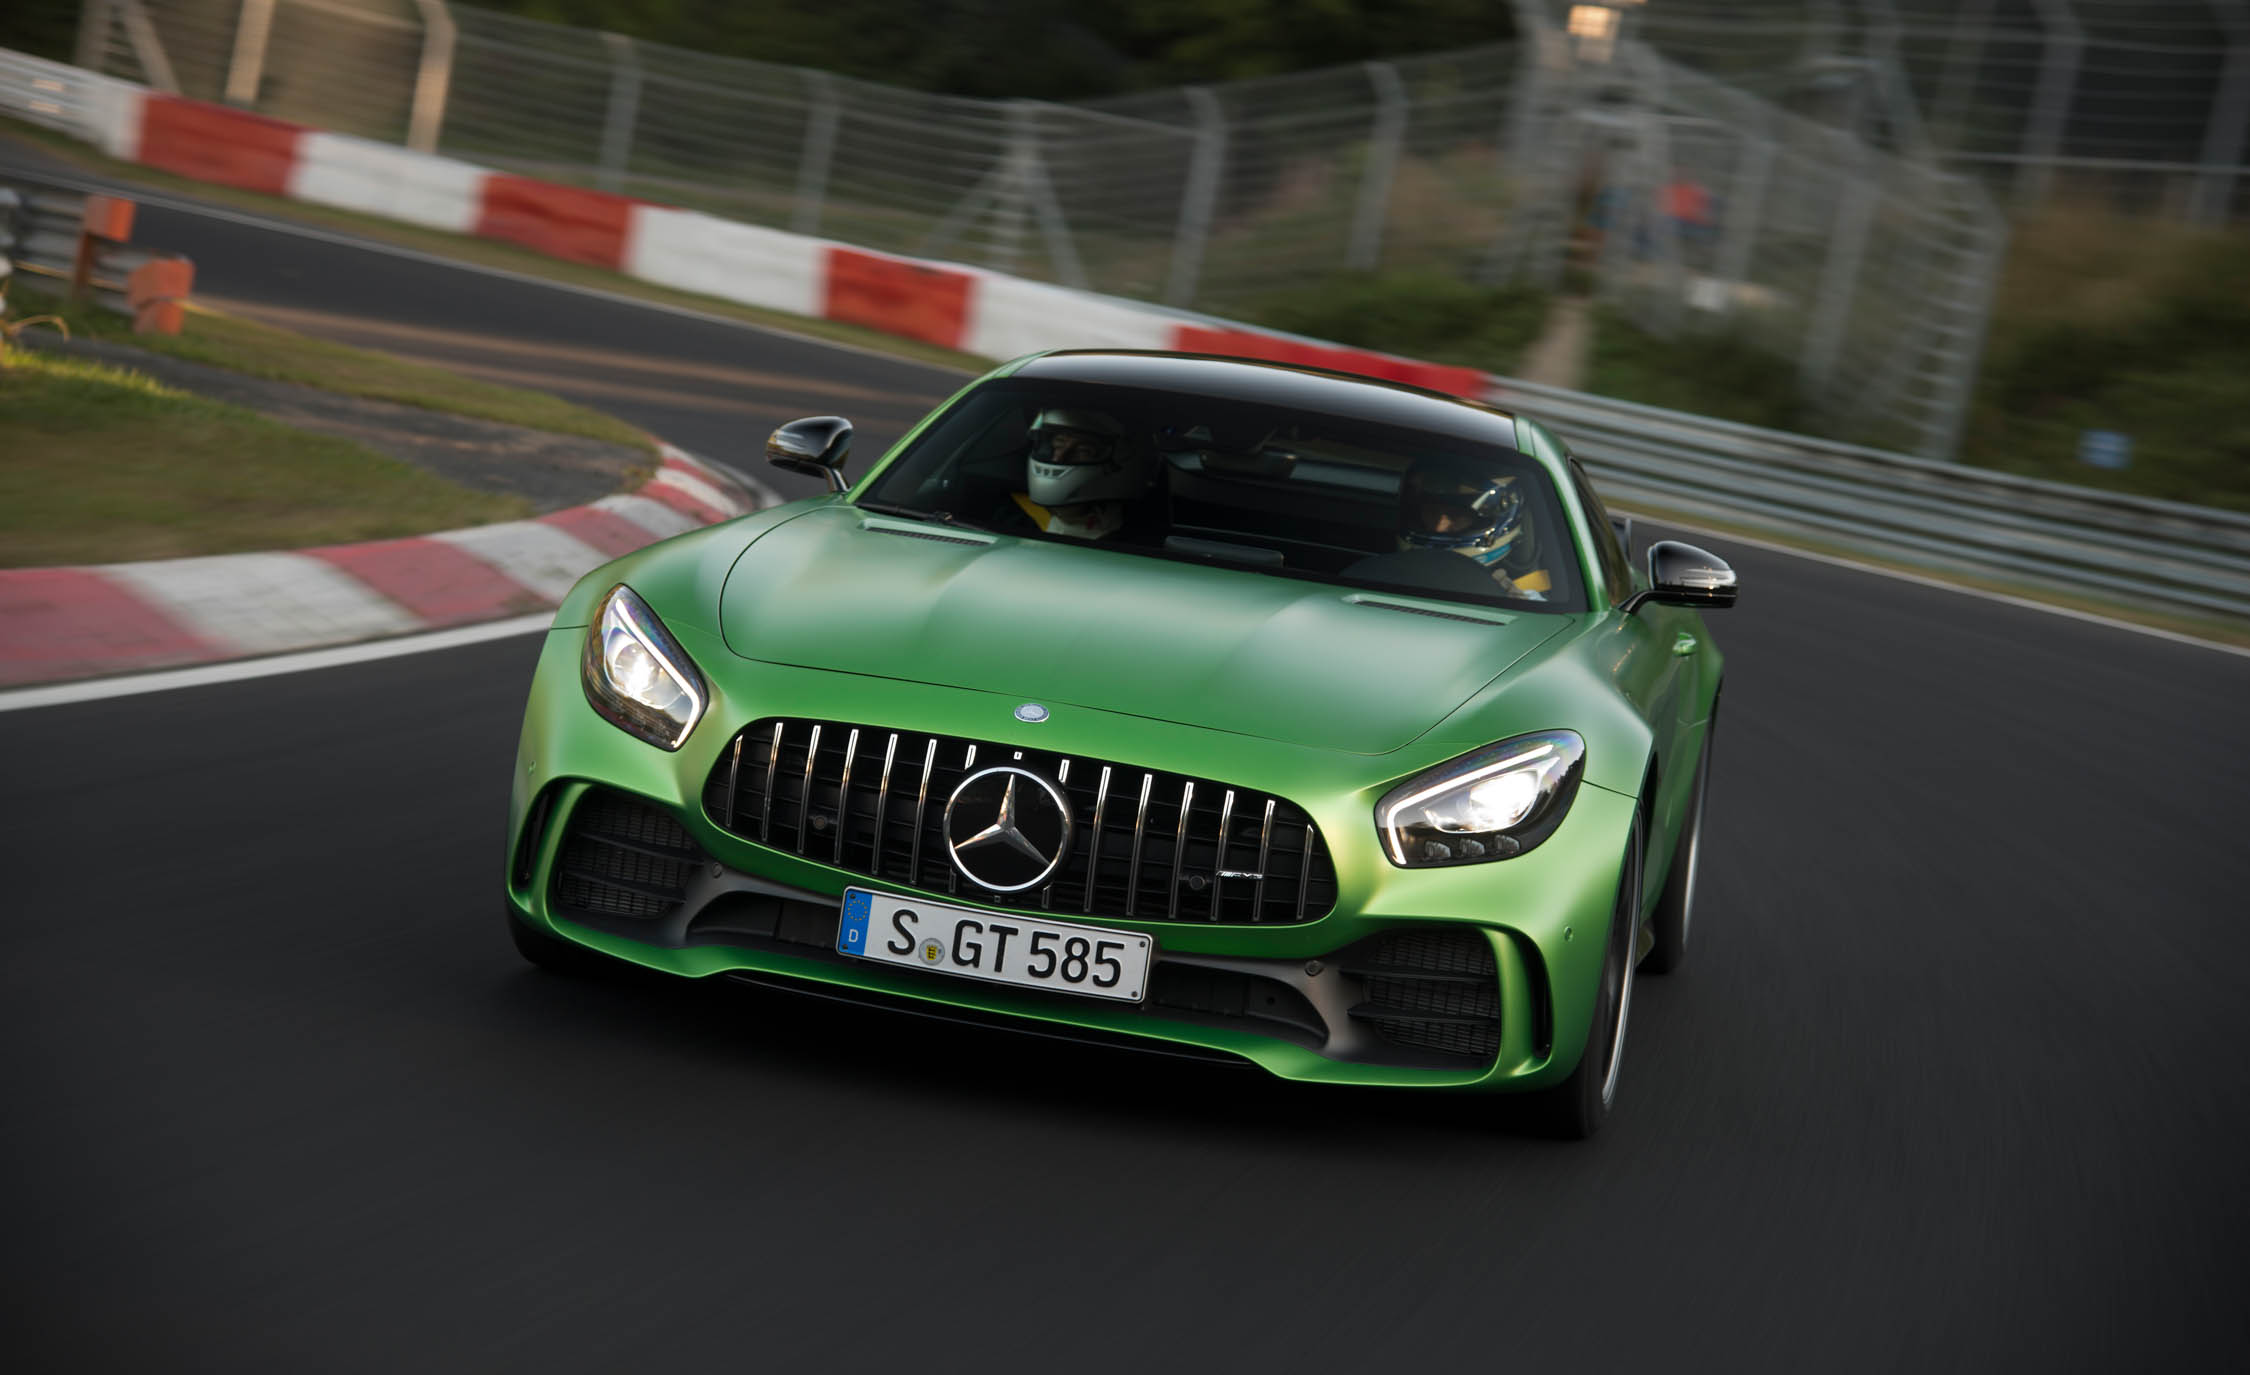 2017 Mercedes Amg Gt R Curcuit Test Front View (Photo 4 of 22)